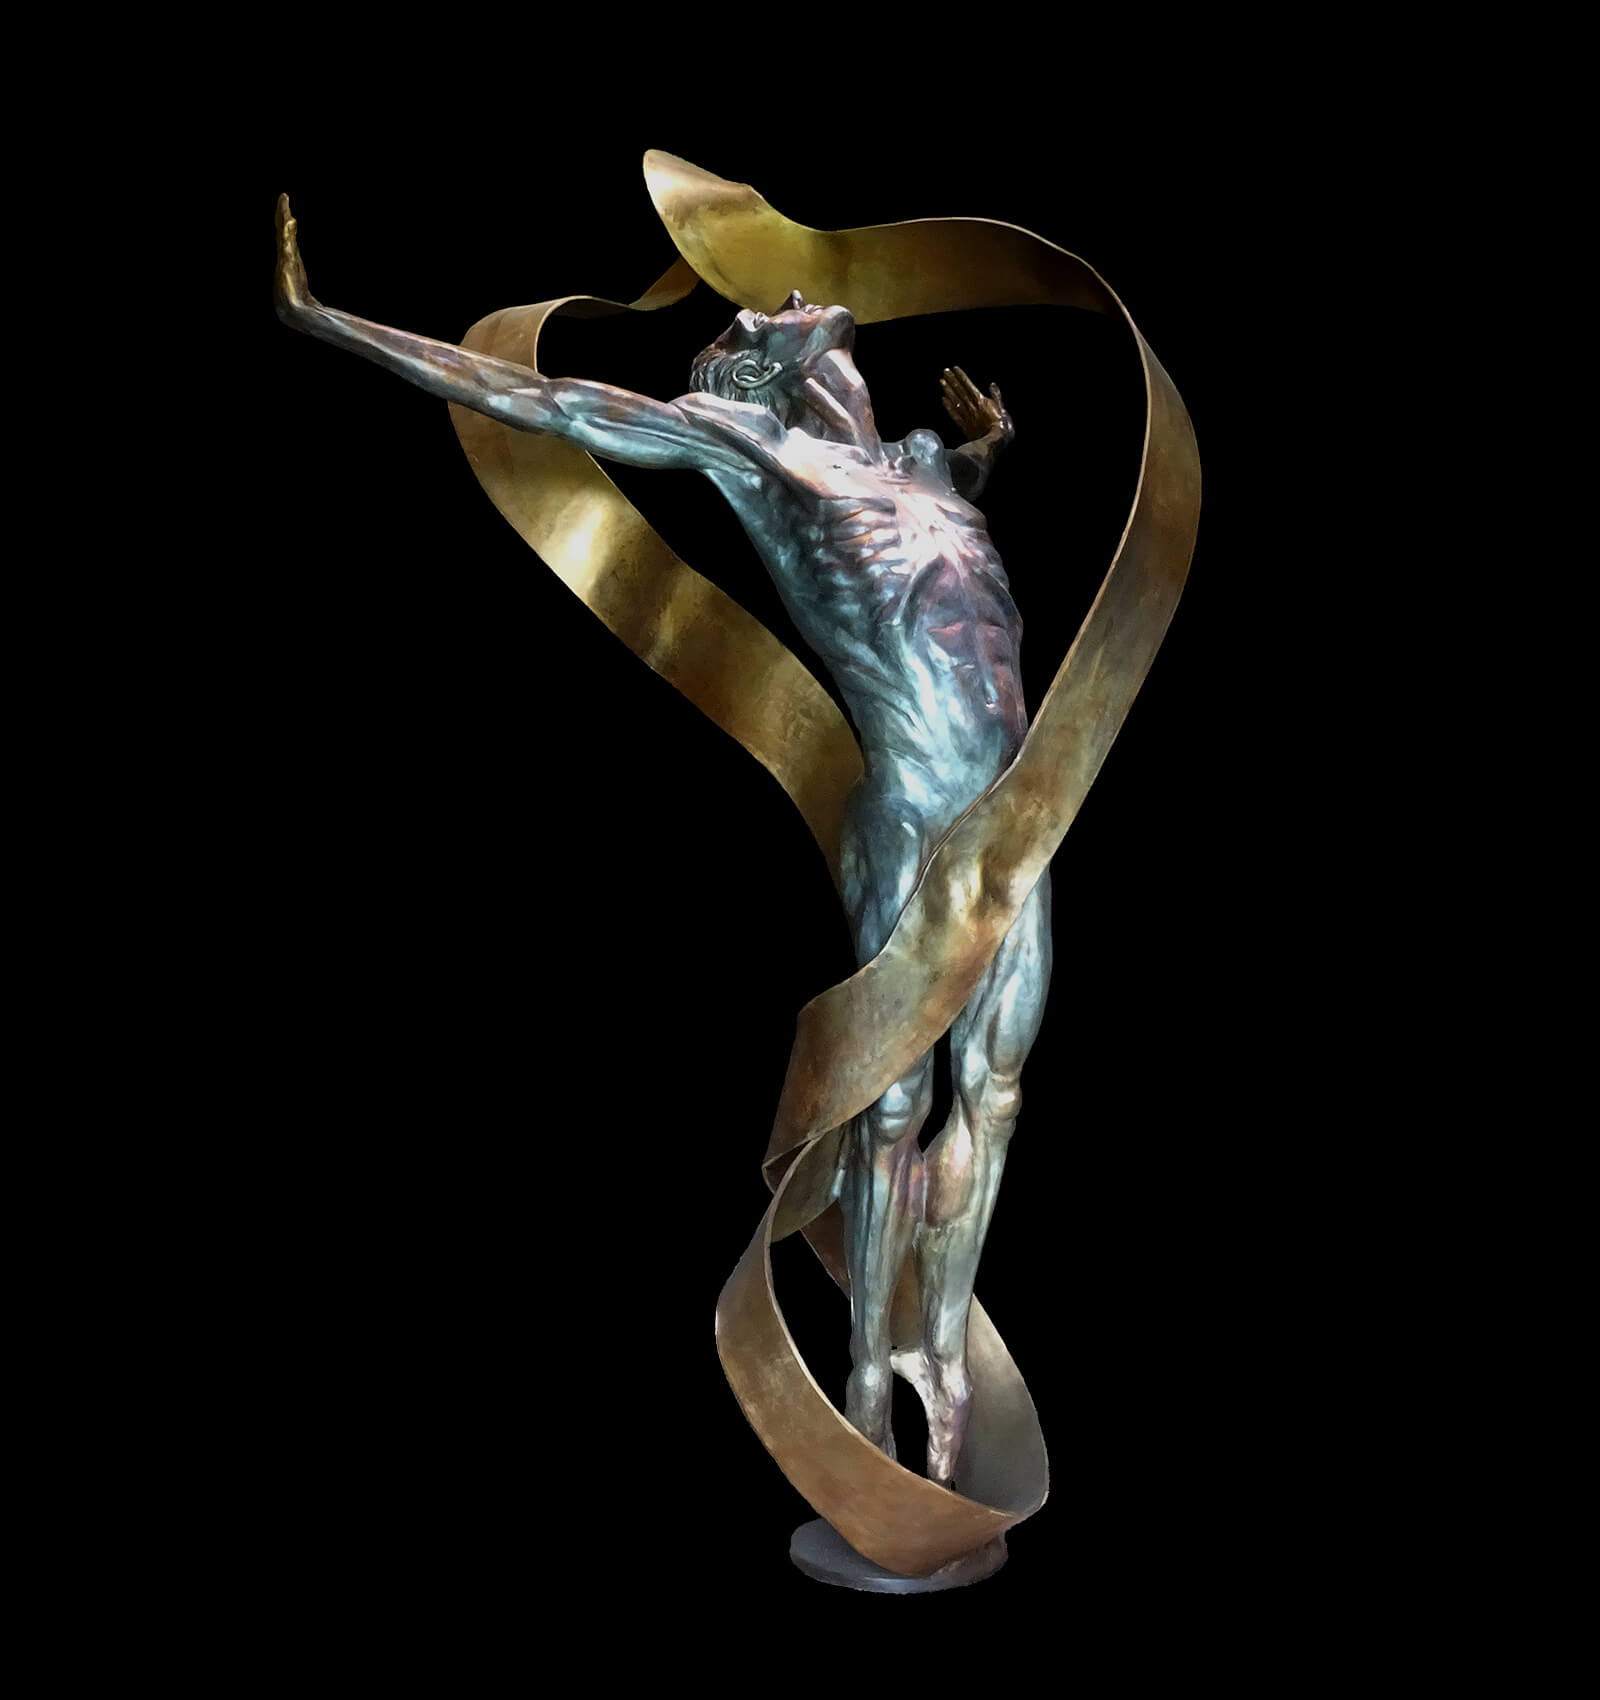 Theright side view of the bronze sculpture Echoes by Andrew DeVries copyright 2019.